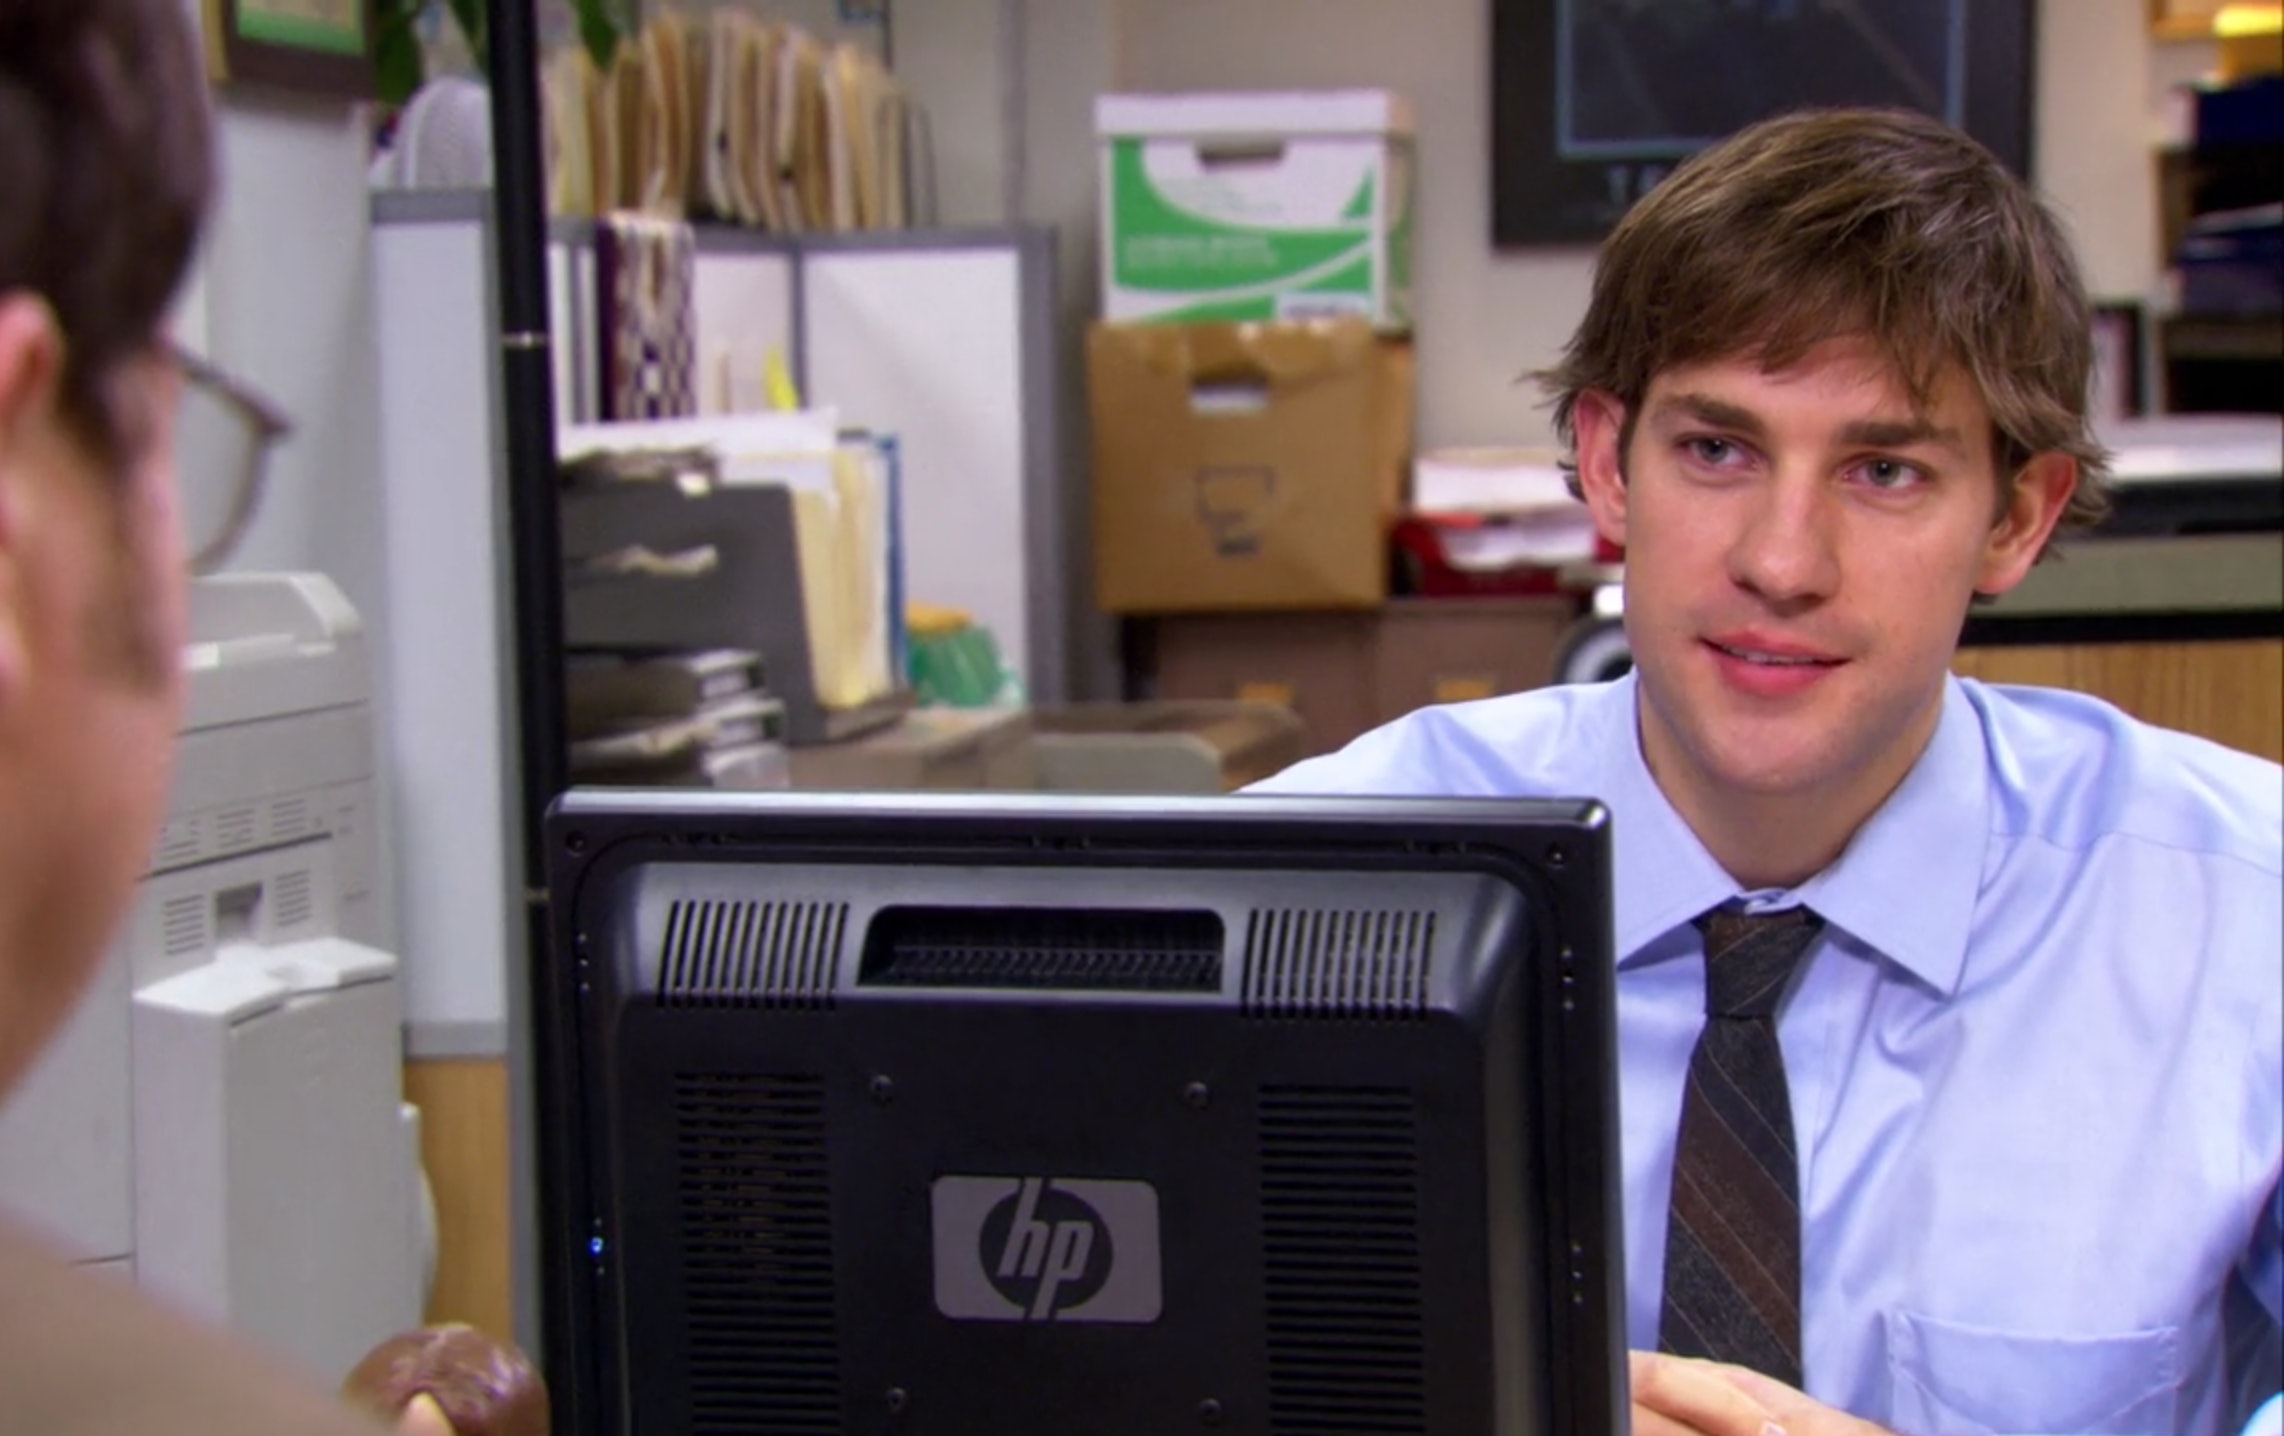 10 Secrets About 'The Office' That Even The Biggest Michael